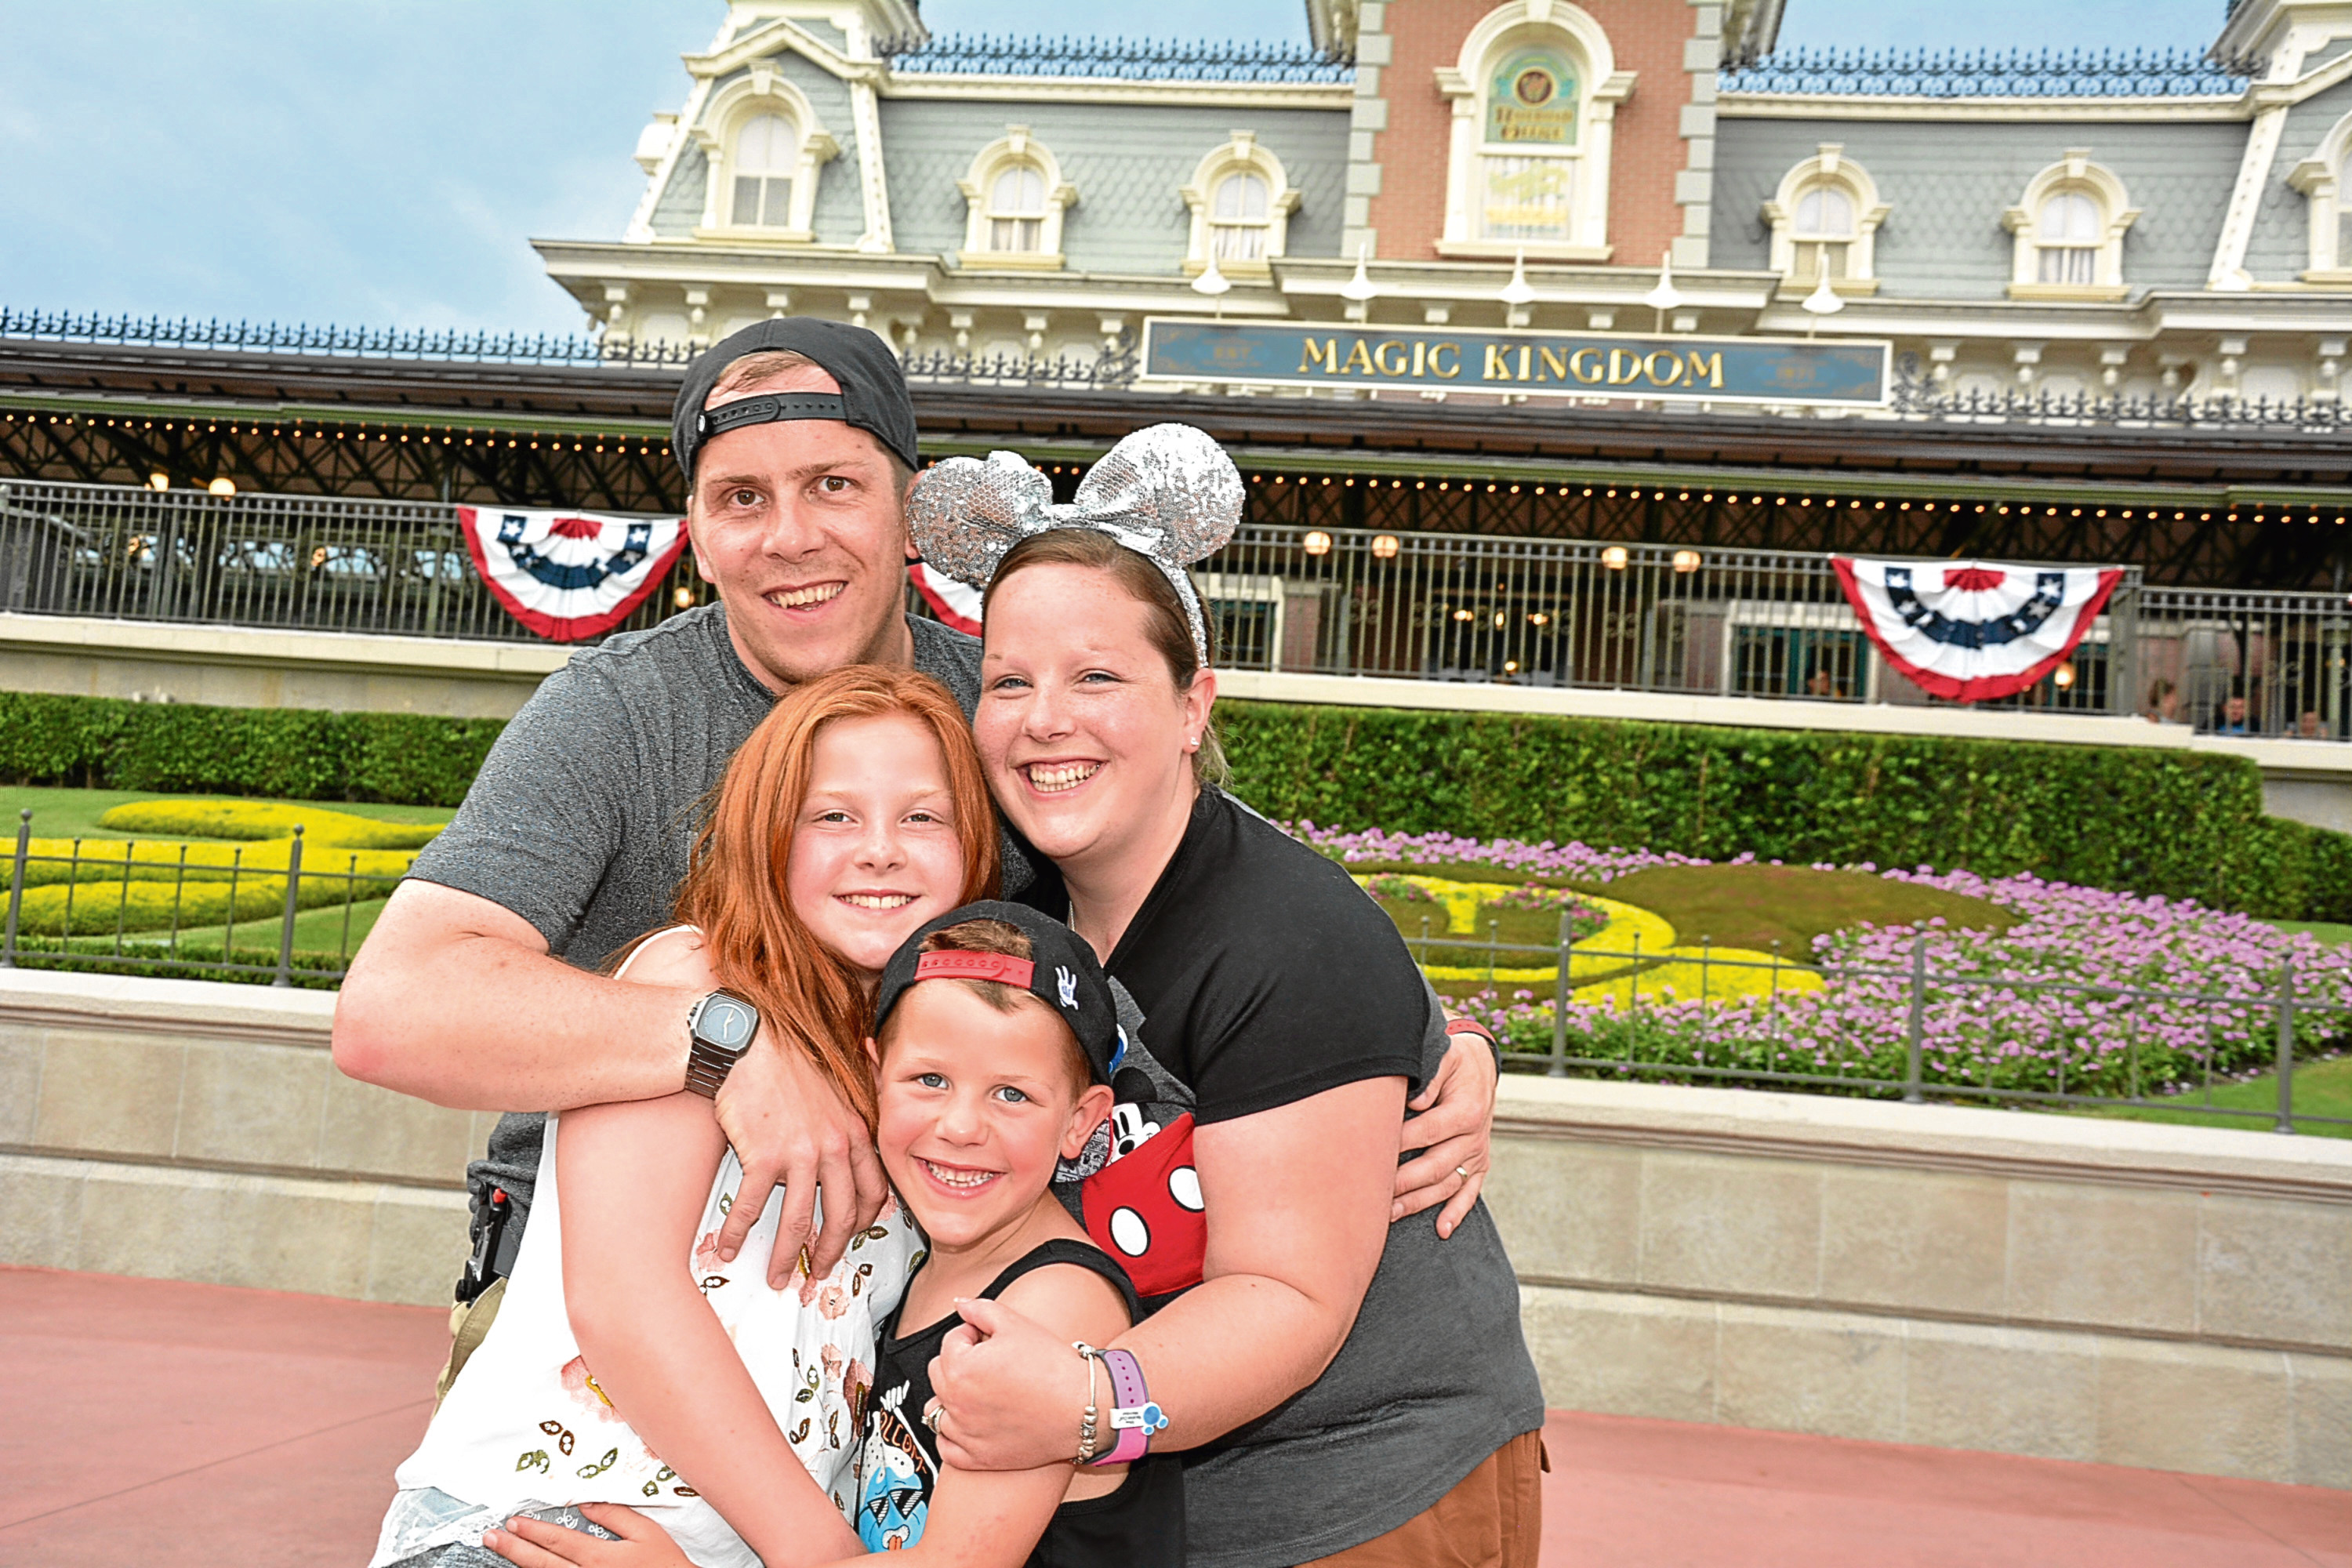 Jemma Stott, from Rothienorman, with her family at Disney World, Florida